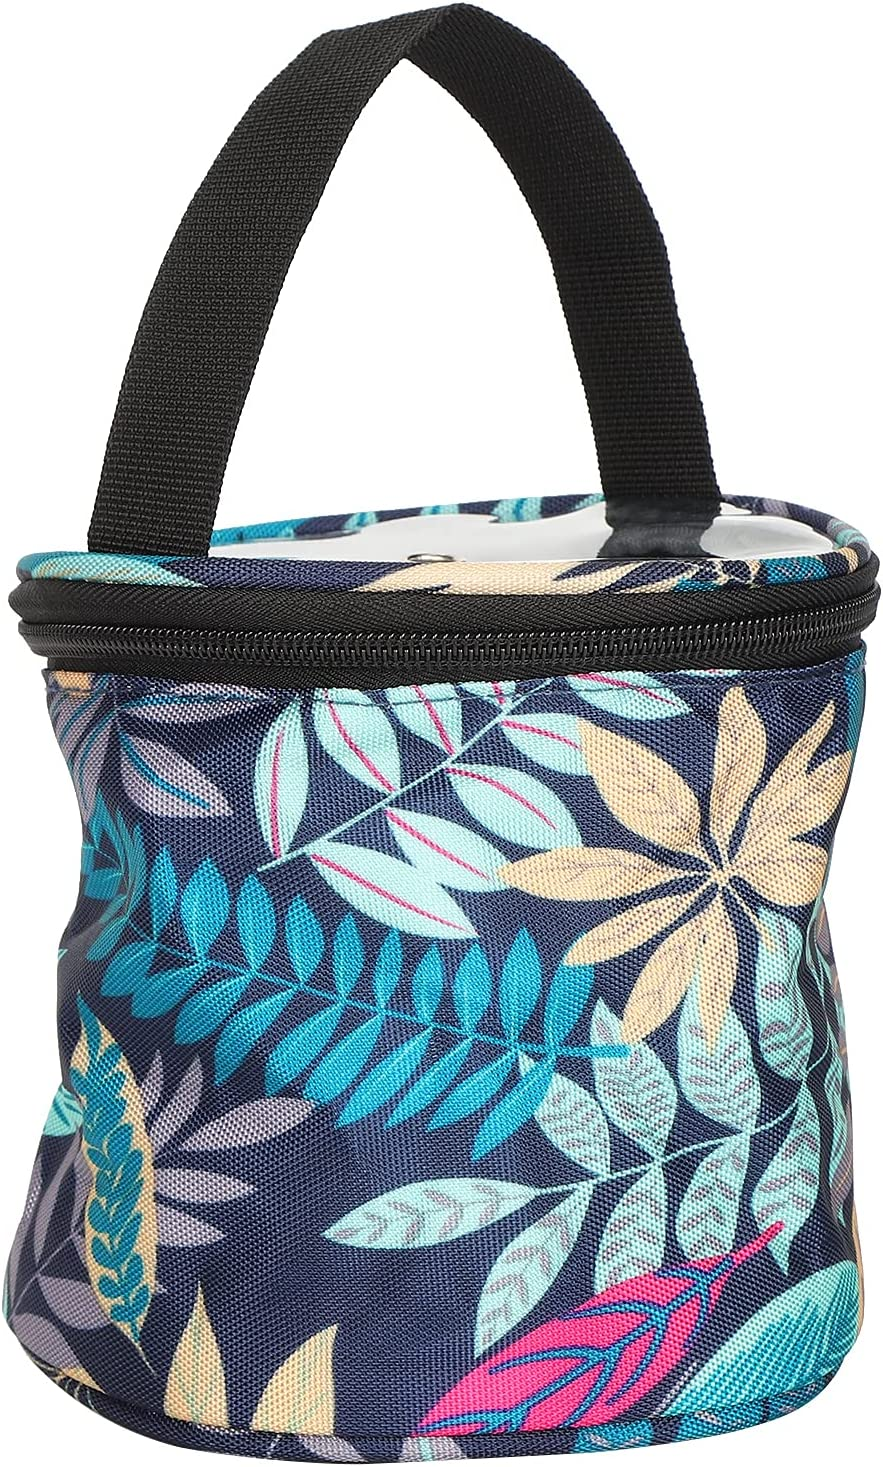 WESE Complete Free Shipping Bucket Bag Wear-Resistant Sewing Fresno Mall for T Waterproof Tool